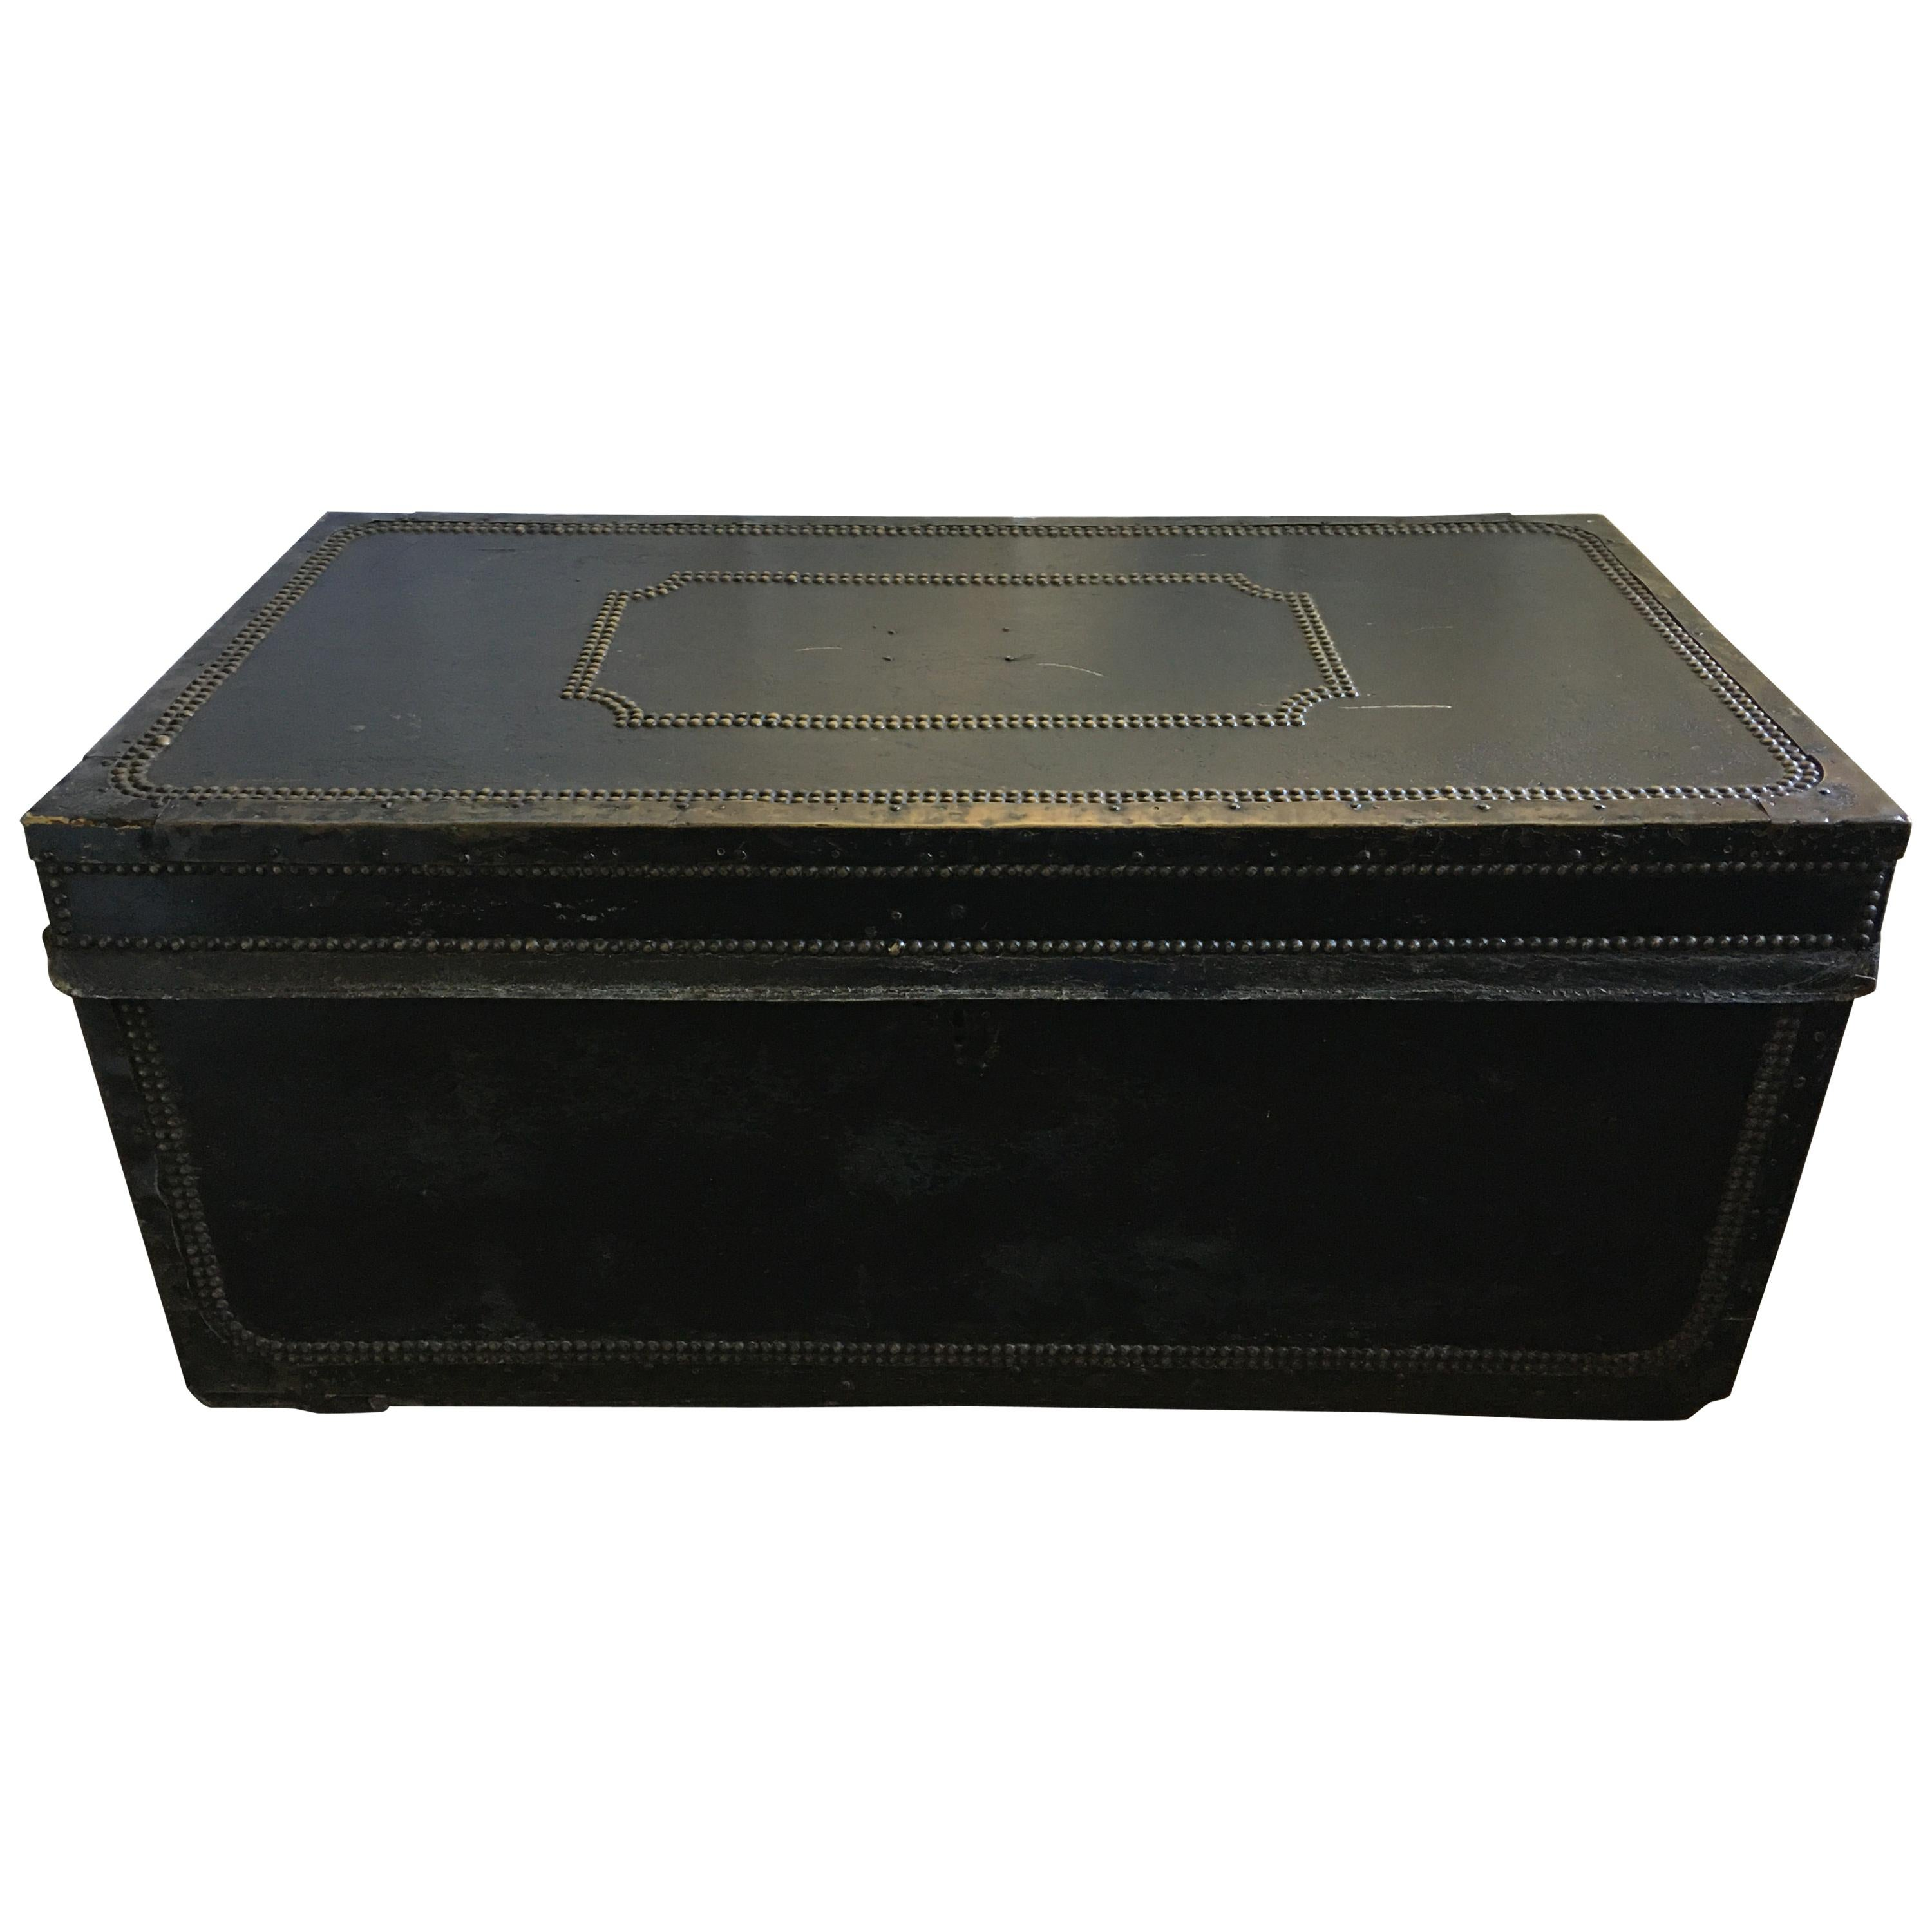 English Regency Traveling Metal Trunk With Decorative Nail Heads 19th Century For Sale At 1stdibs